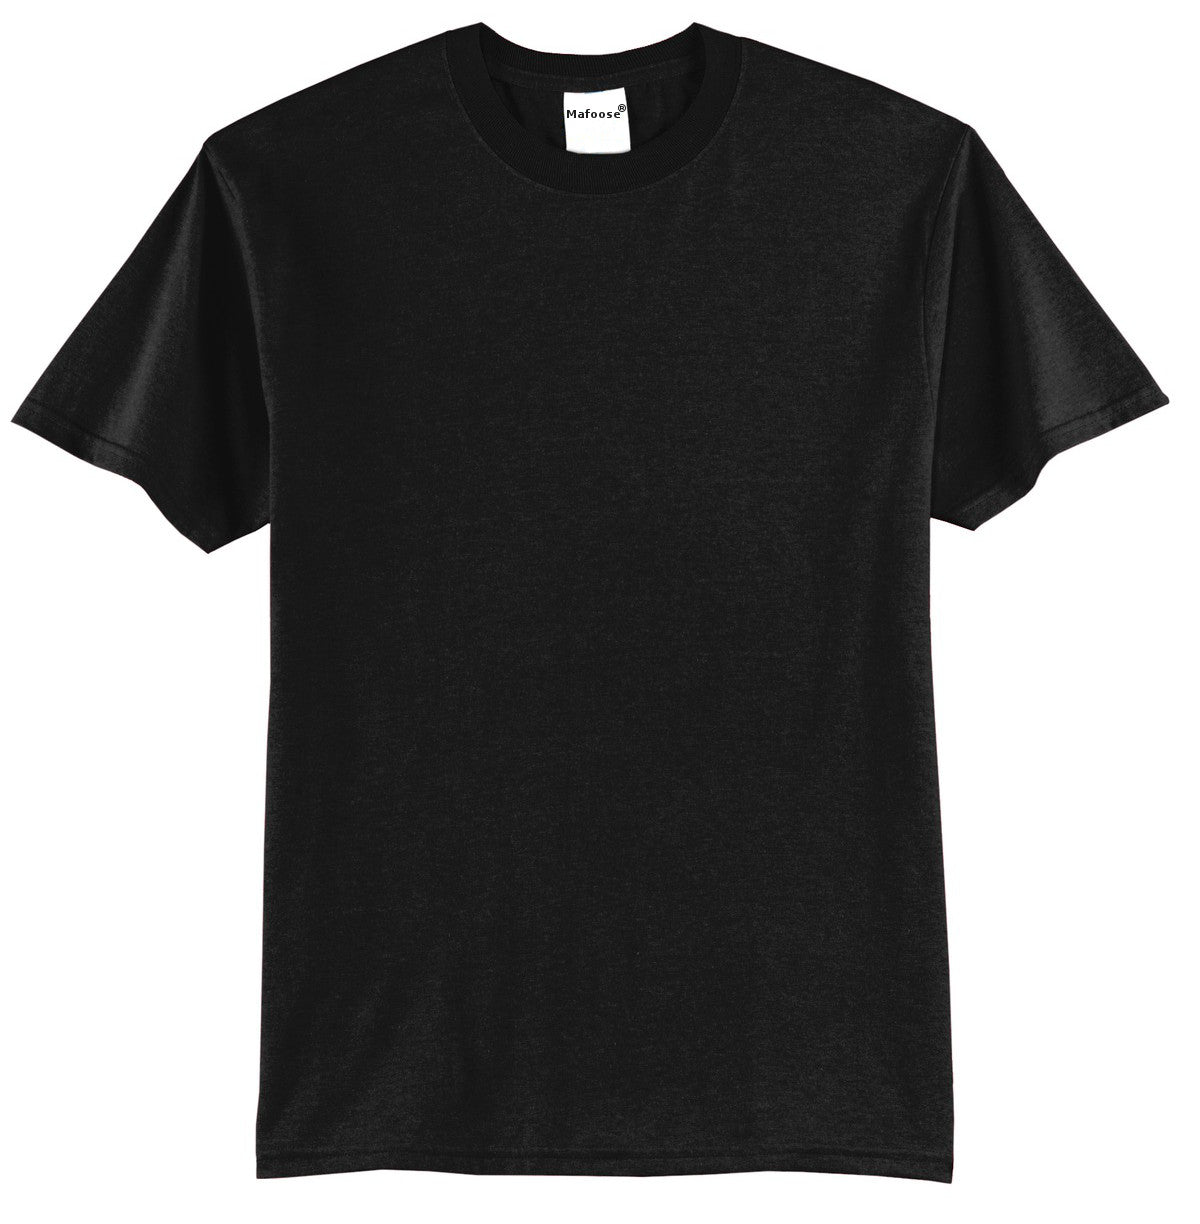 Mafoose Men's Core Blend Tee Shirt Jet Black